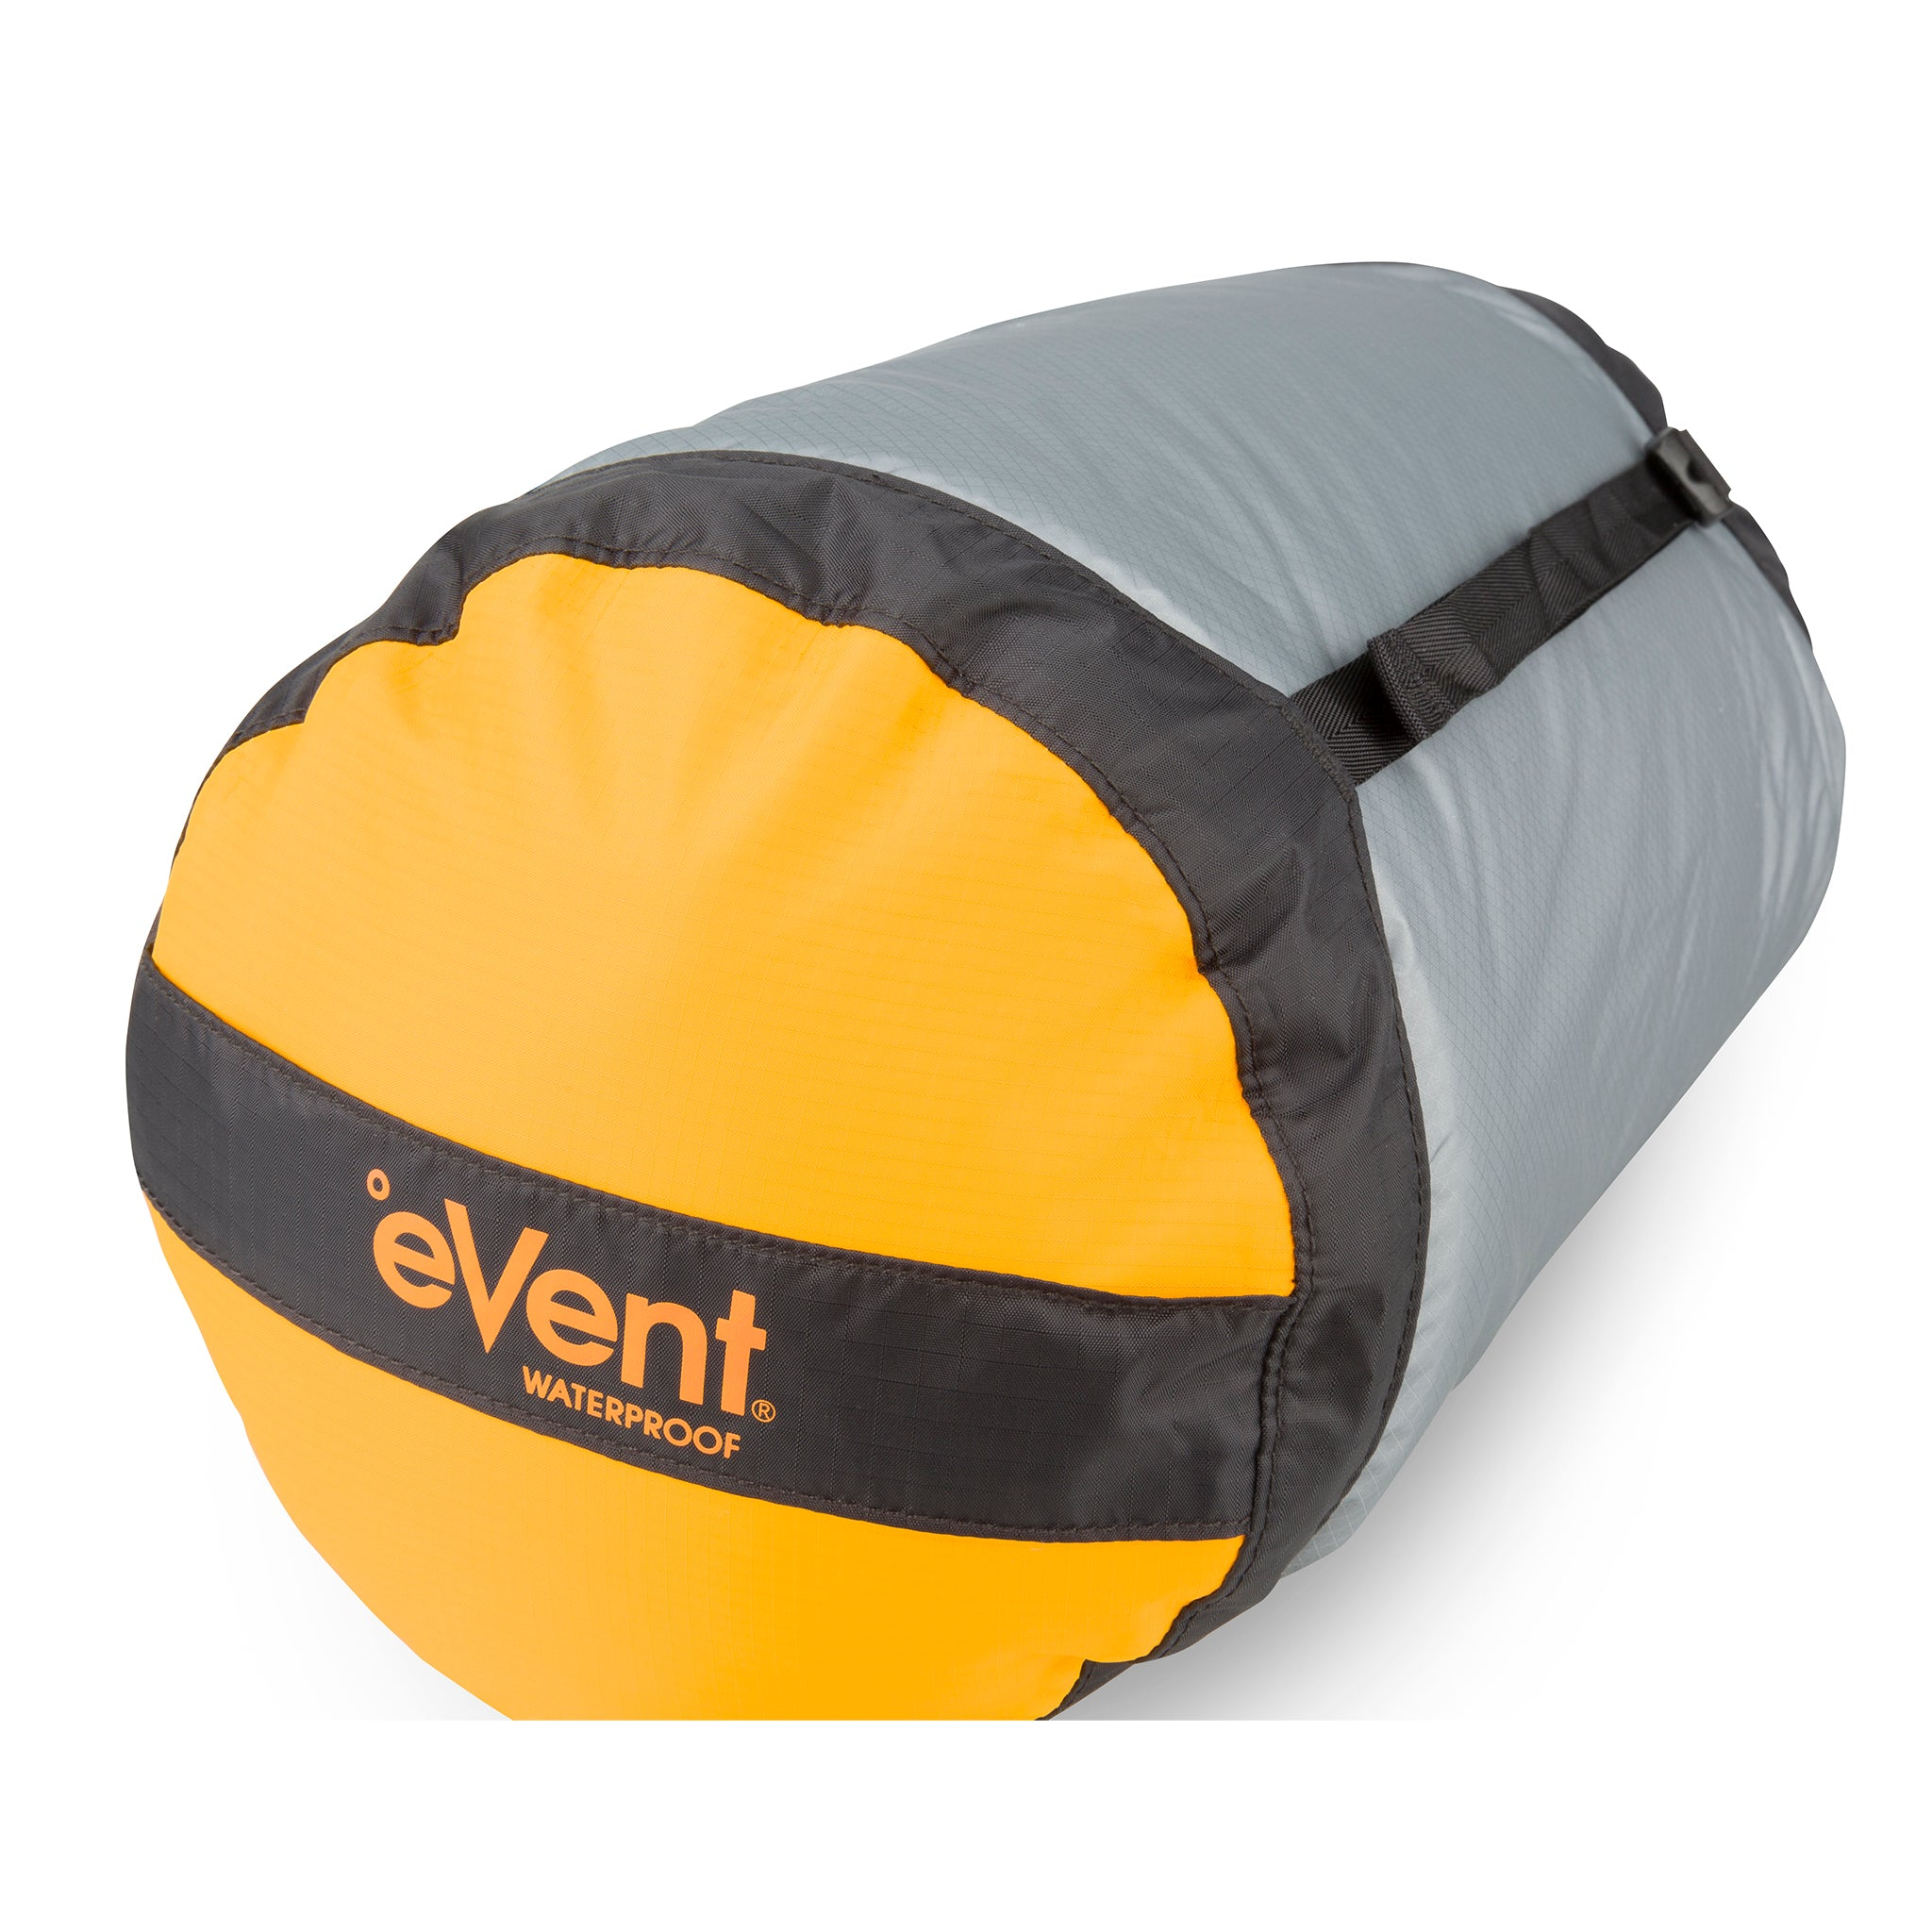 Ultra-Sil_eVent_Compression_Waterproof Dry Bag_Detail_5